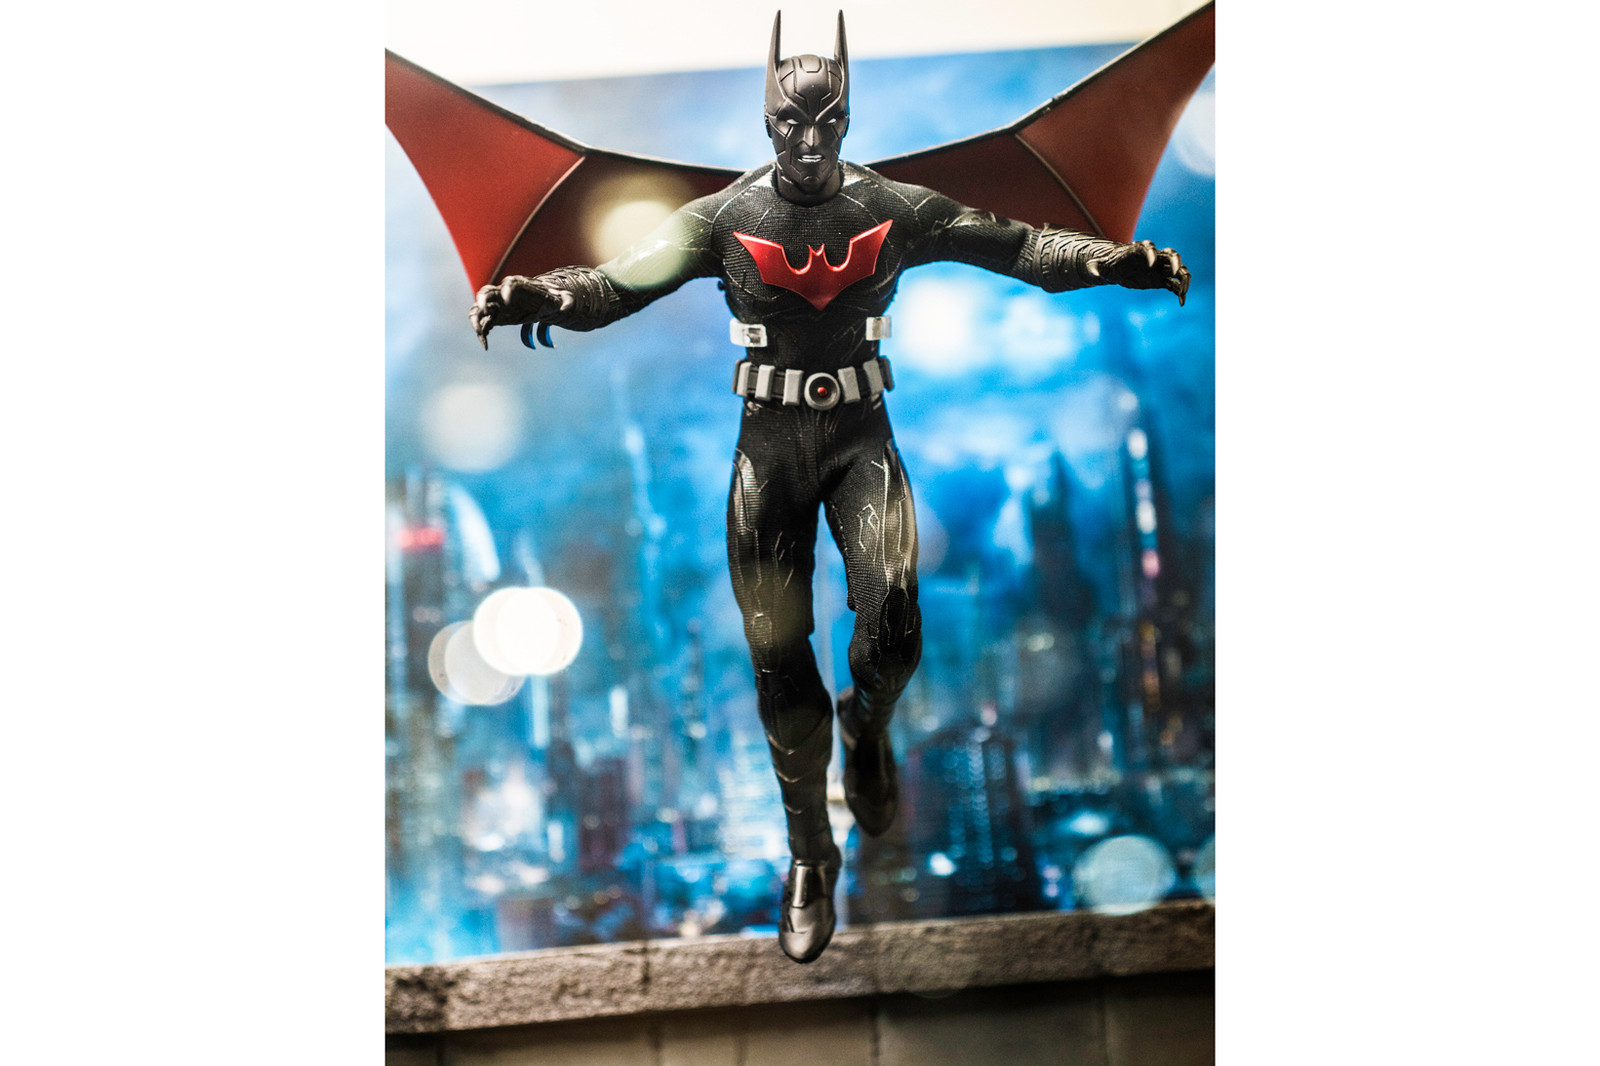 Figures Collectables Toy Fair 2018 Bandai Iron Studios NECA Hot Toys Mezco Dark Horse Banpresto Marvel DC Jacob K. Javits Center